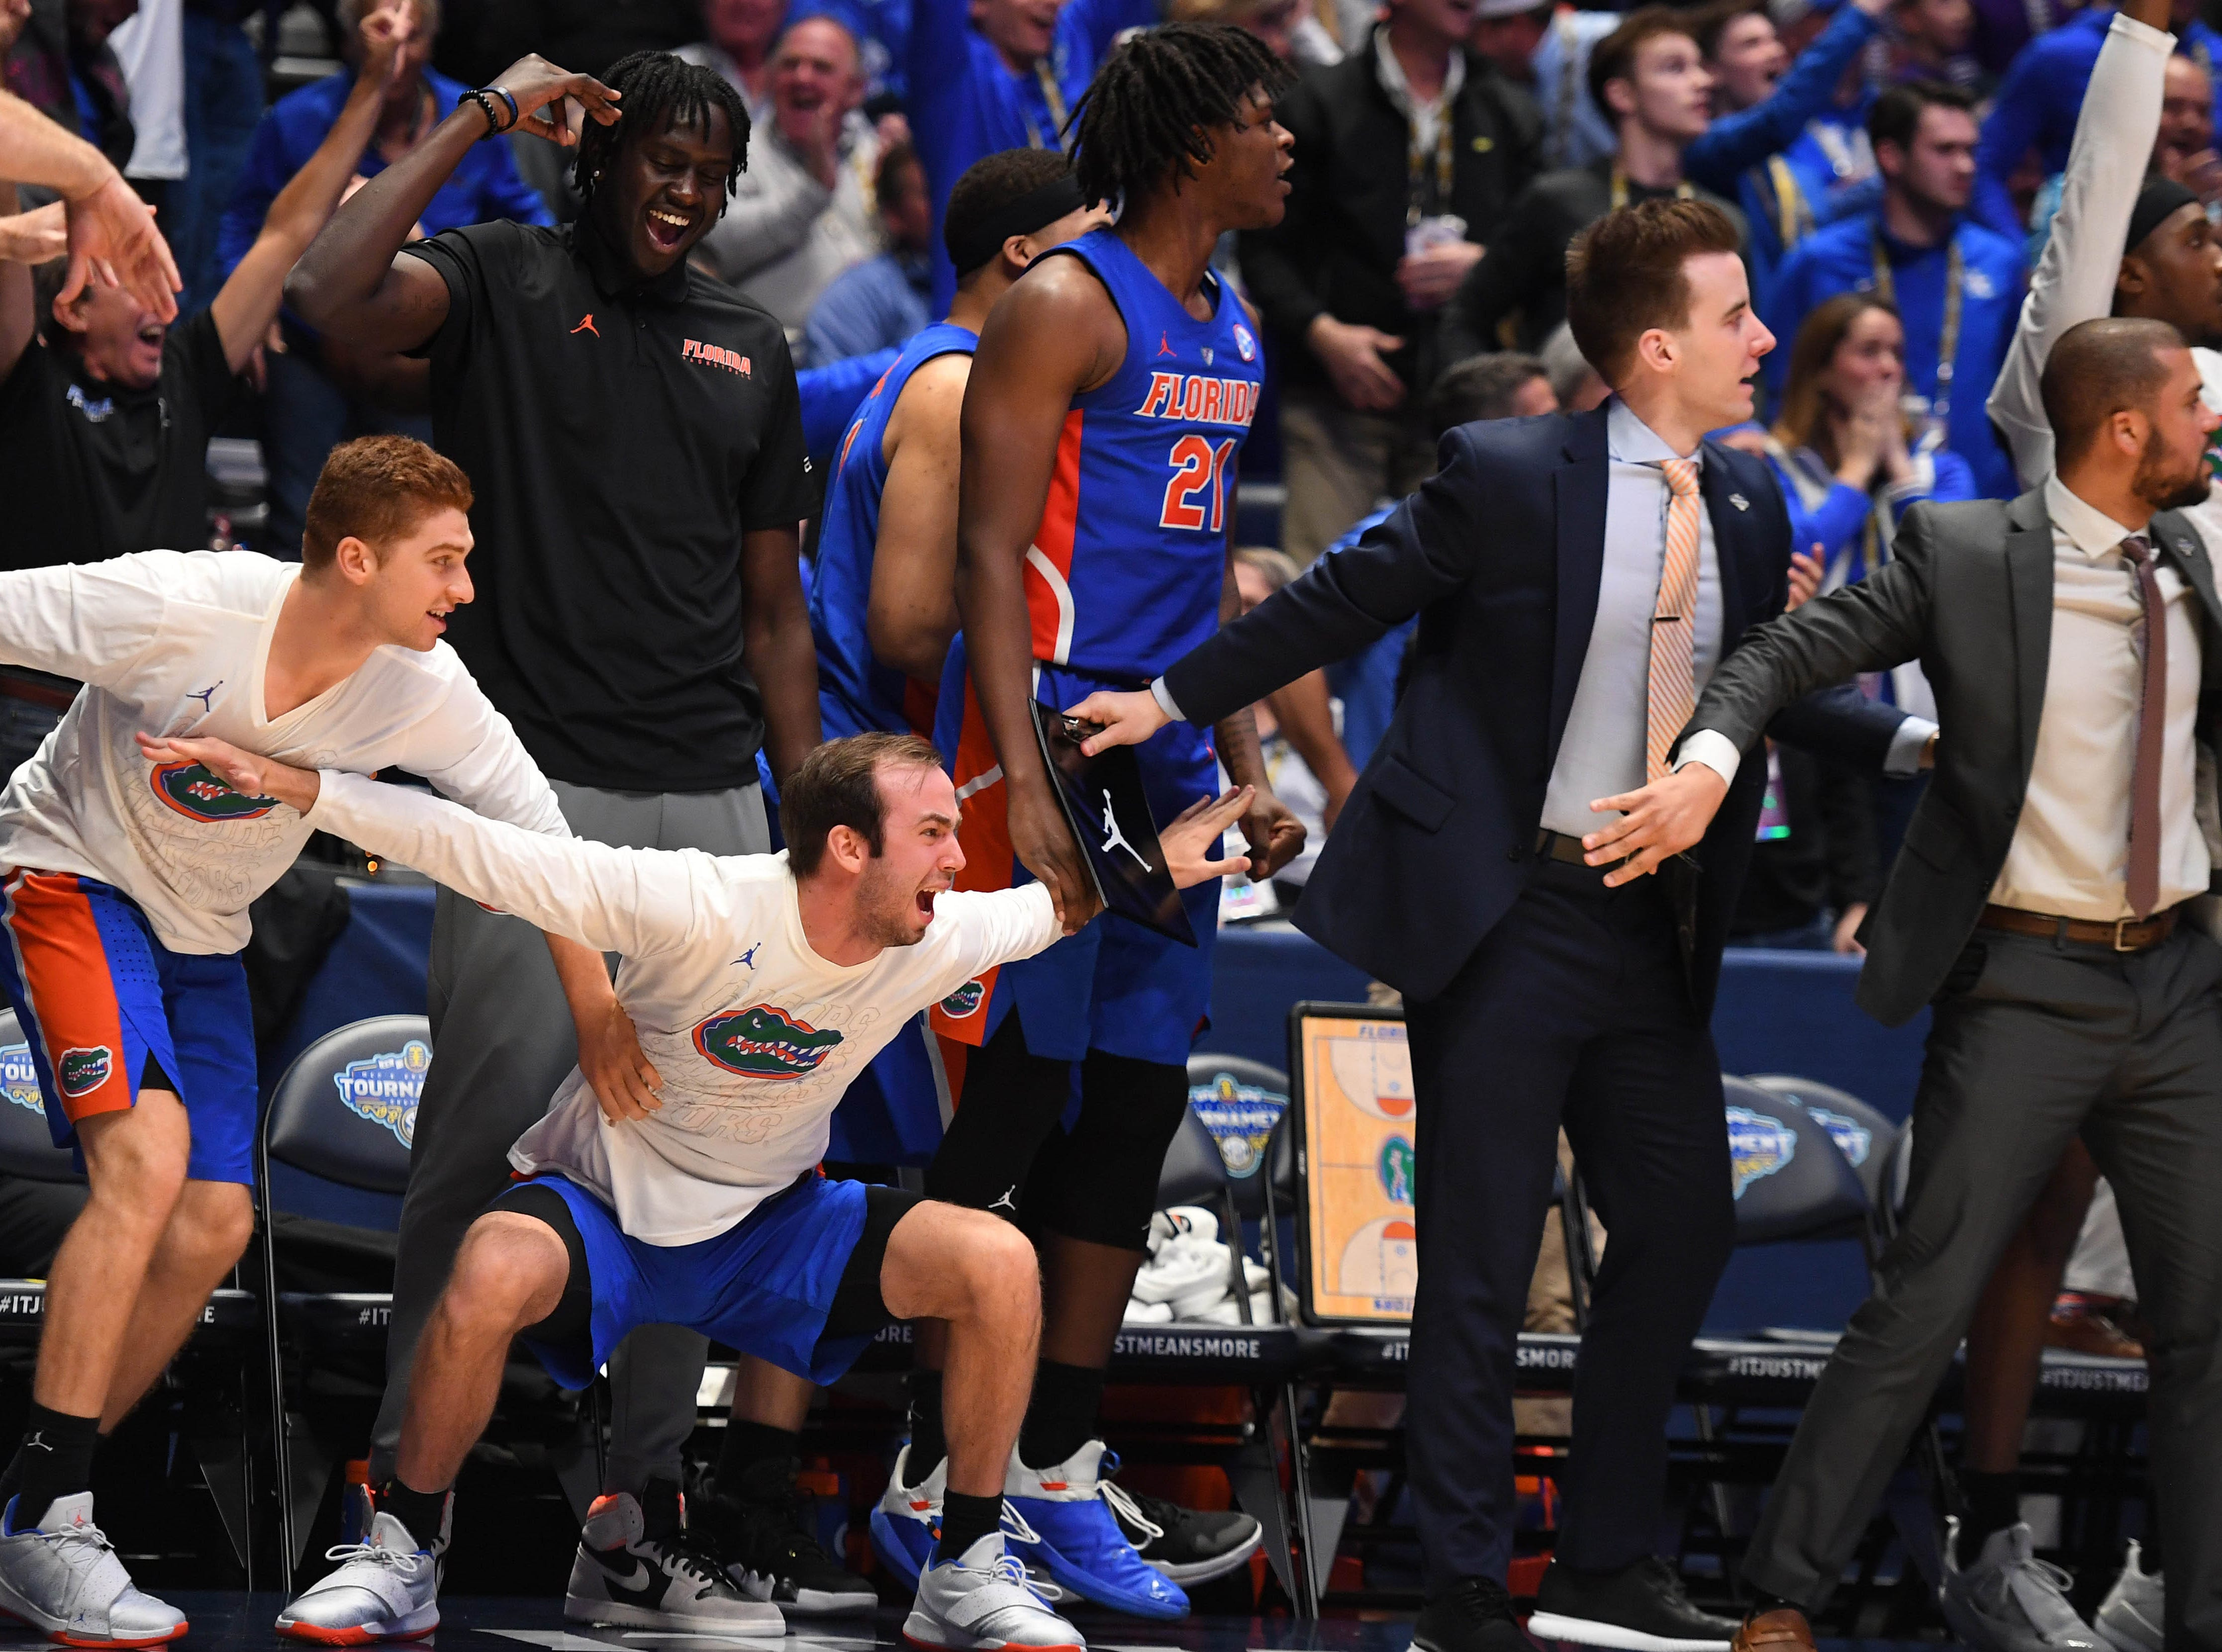 Mar 15, 2019; Nashville, TN, USA; The Florida Gators bench reacts after a game-winning shot by Florida Gators guard Andrew Nembhard (not pictured) during the second half against the LSU Tigers in the SEC conference tournament at Bridgestone Arena. Mandatory Credit: Christopher Hanewinckel-USA TODAY Sports